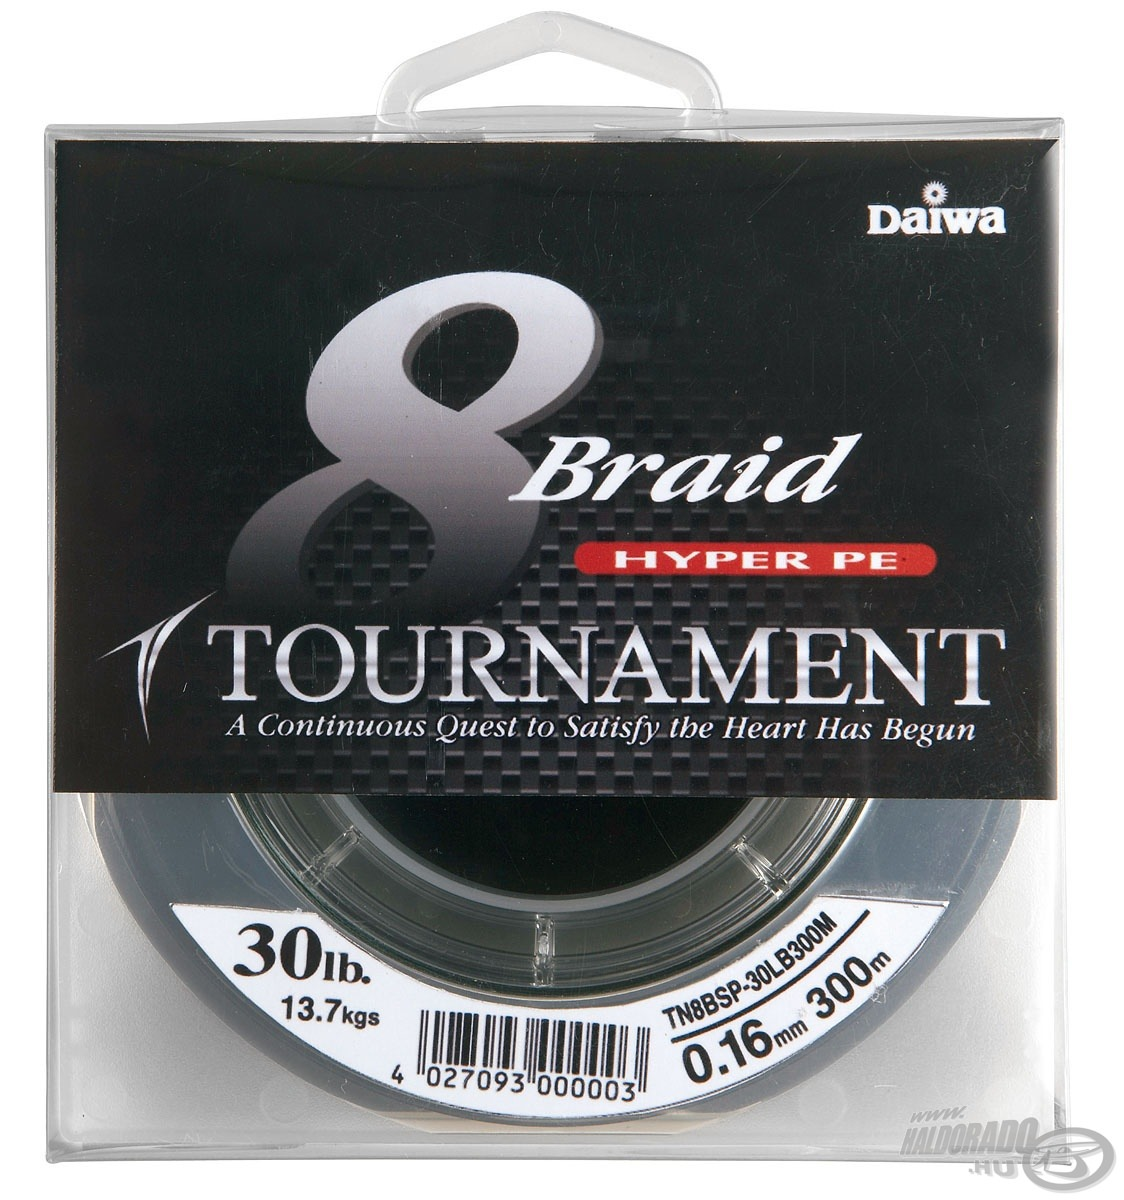 DAIWA, Tournament, 8X, Braid, 0,16, mm, -, 300, m 16990, helyett, 13890Ft